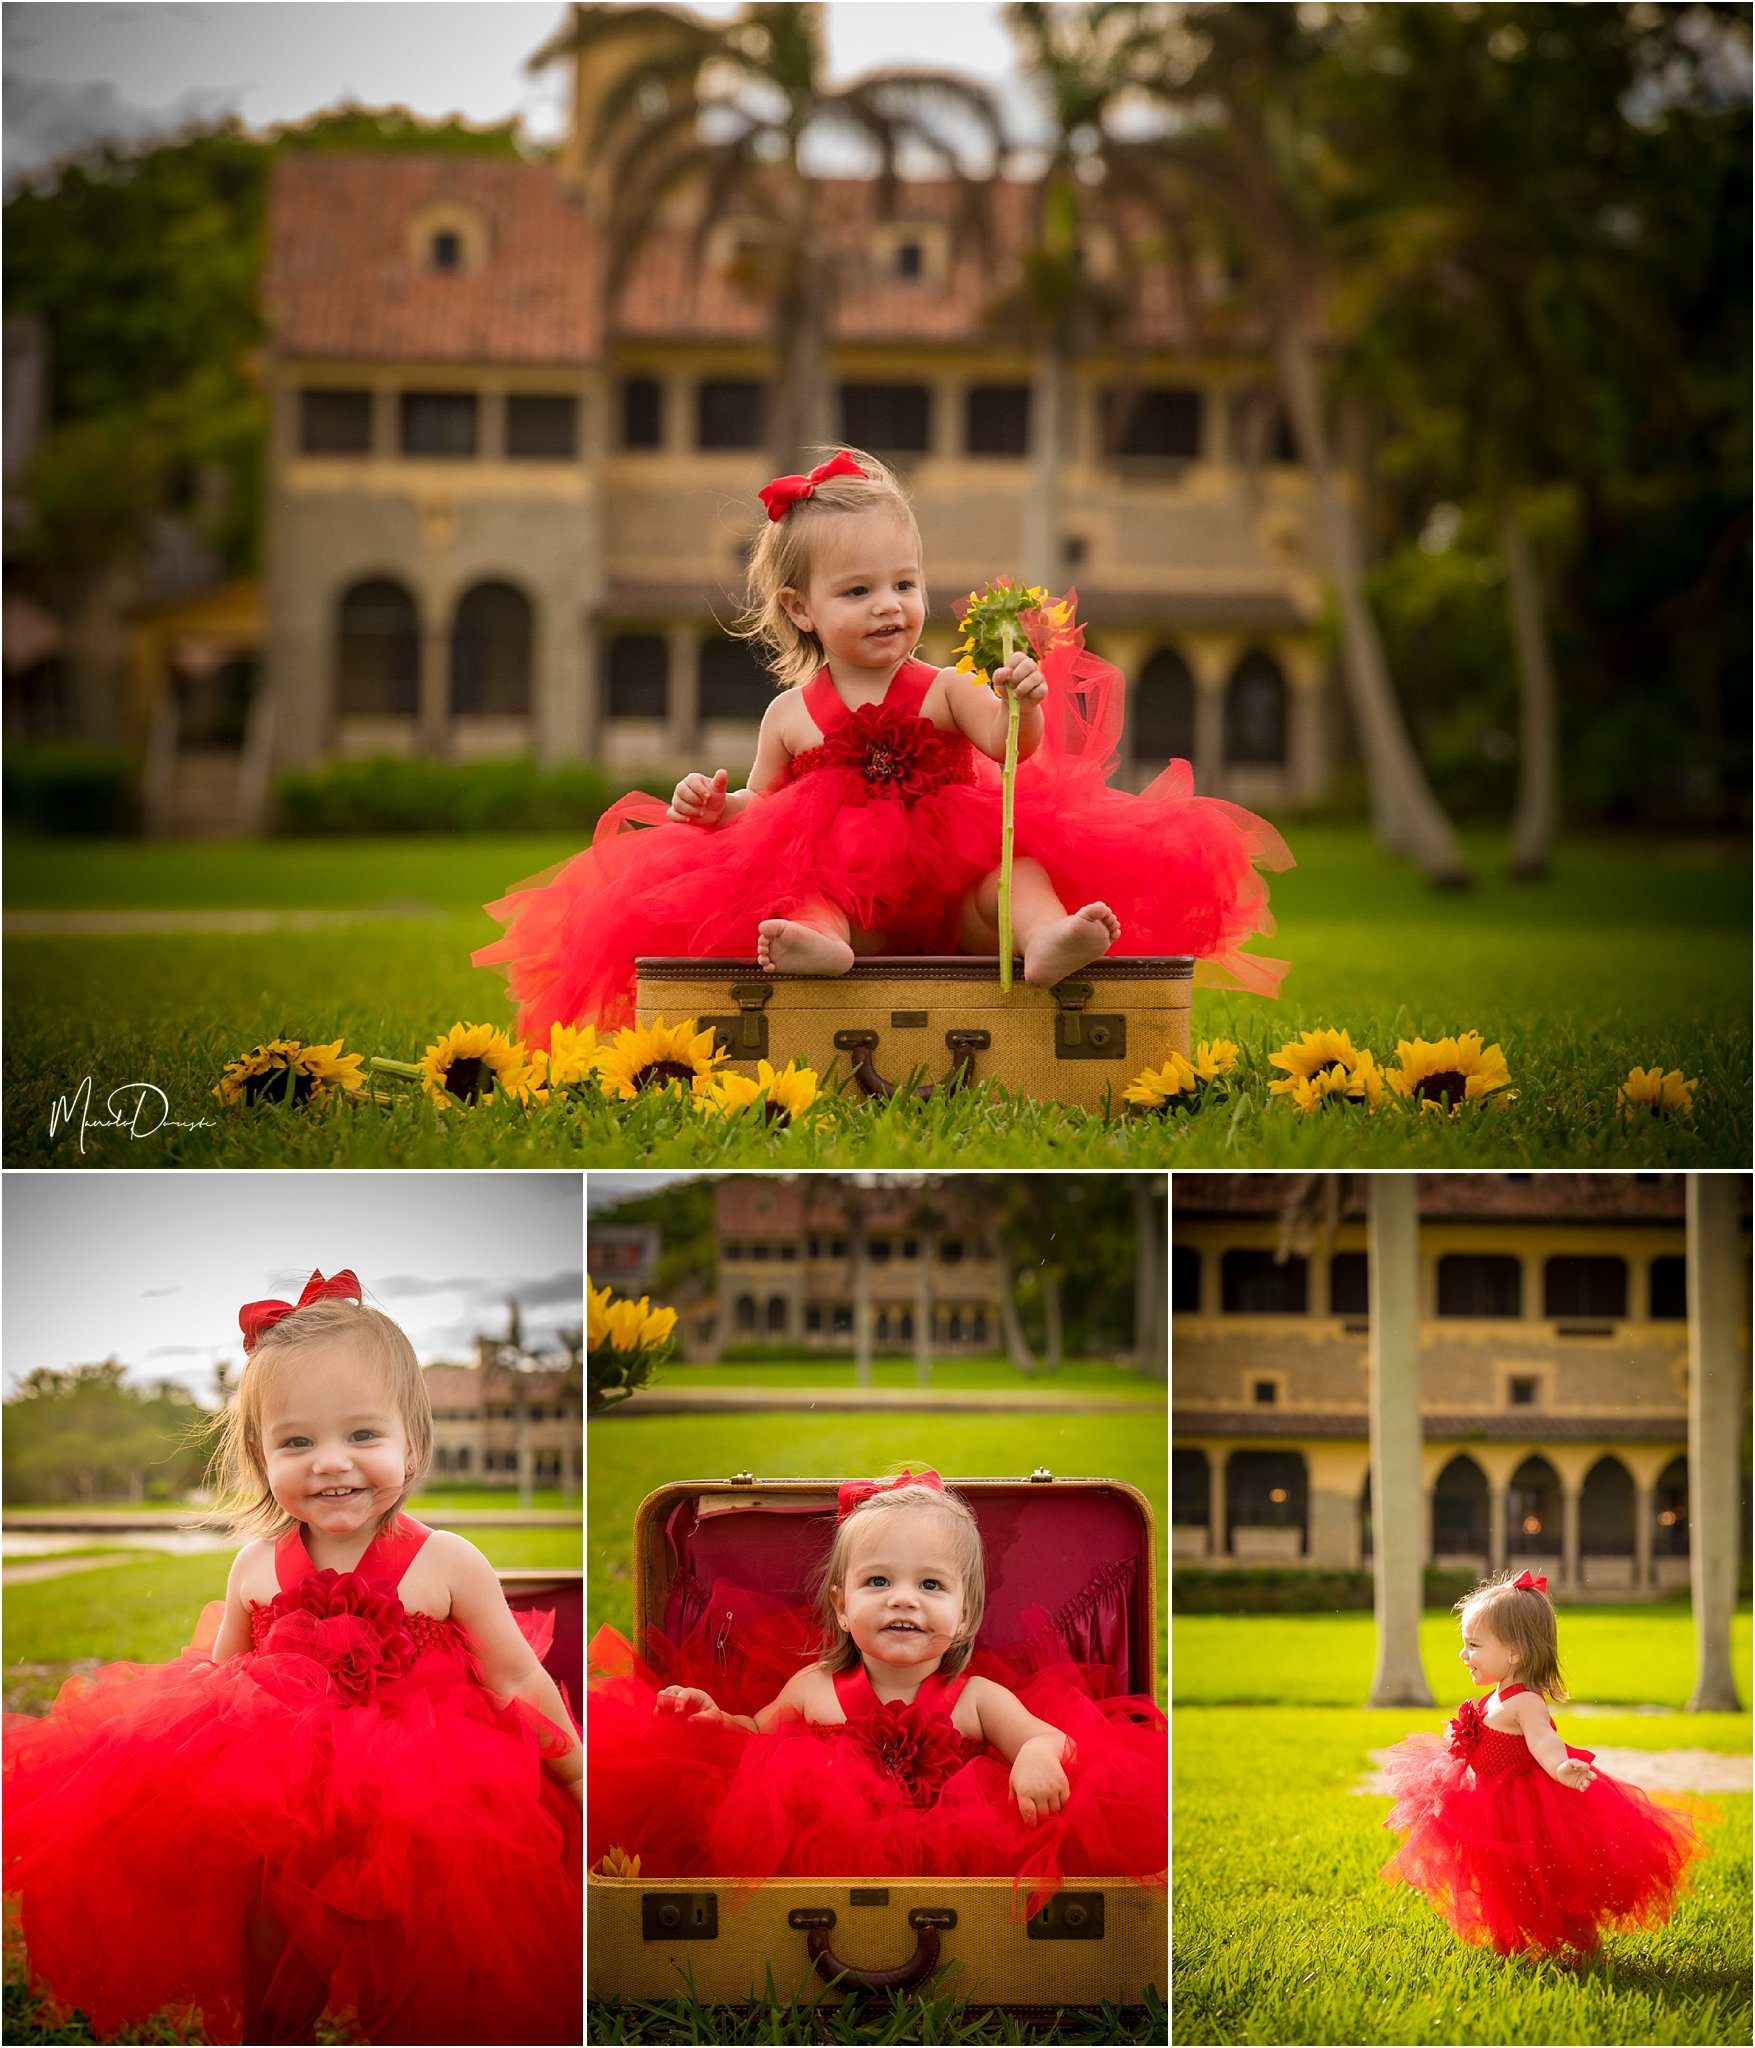 0142_ManoloDoreste_InFocusStudios_Wedding_Family_Photography_Miami_MiamiPhotographer.jpg